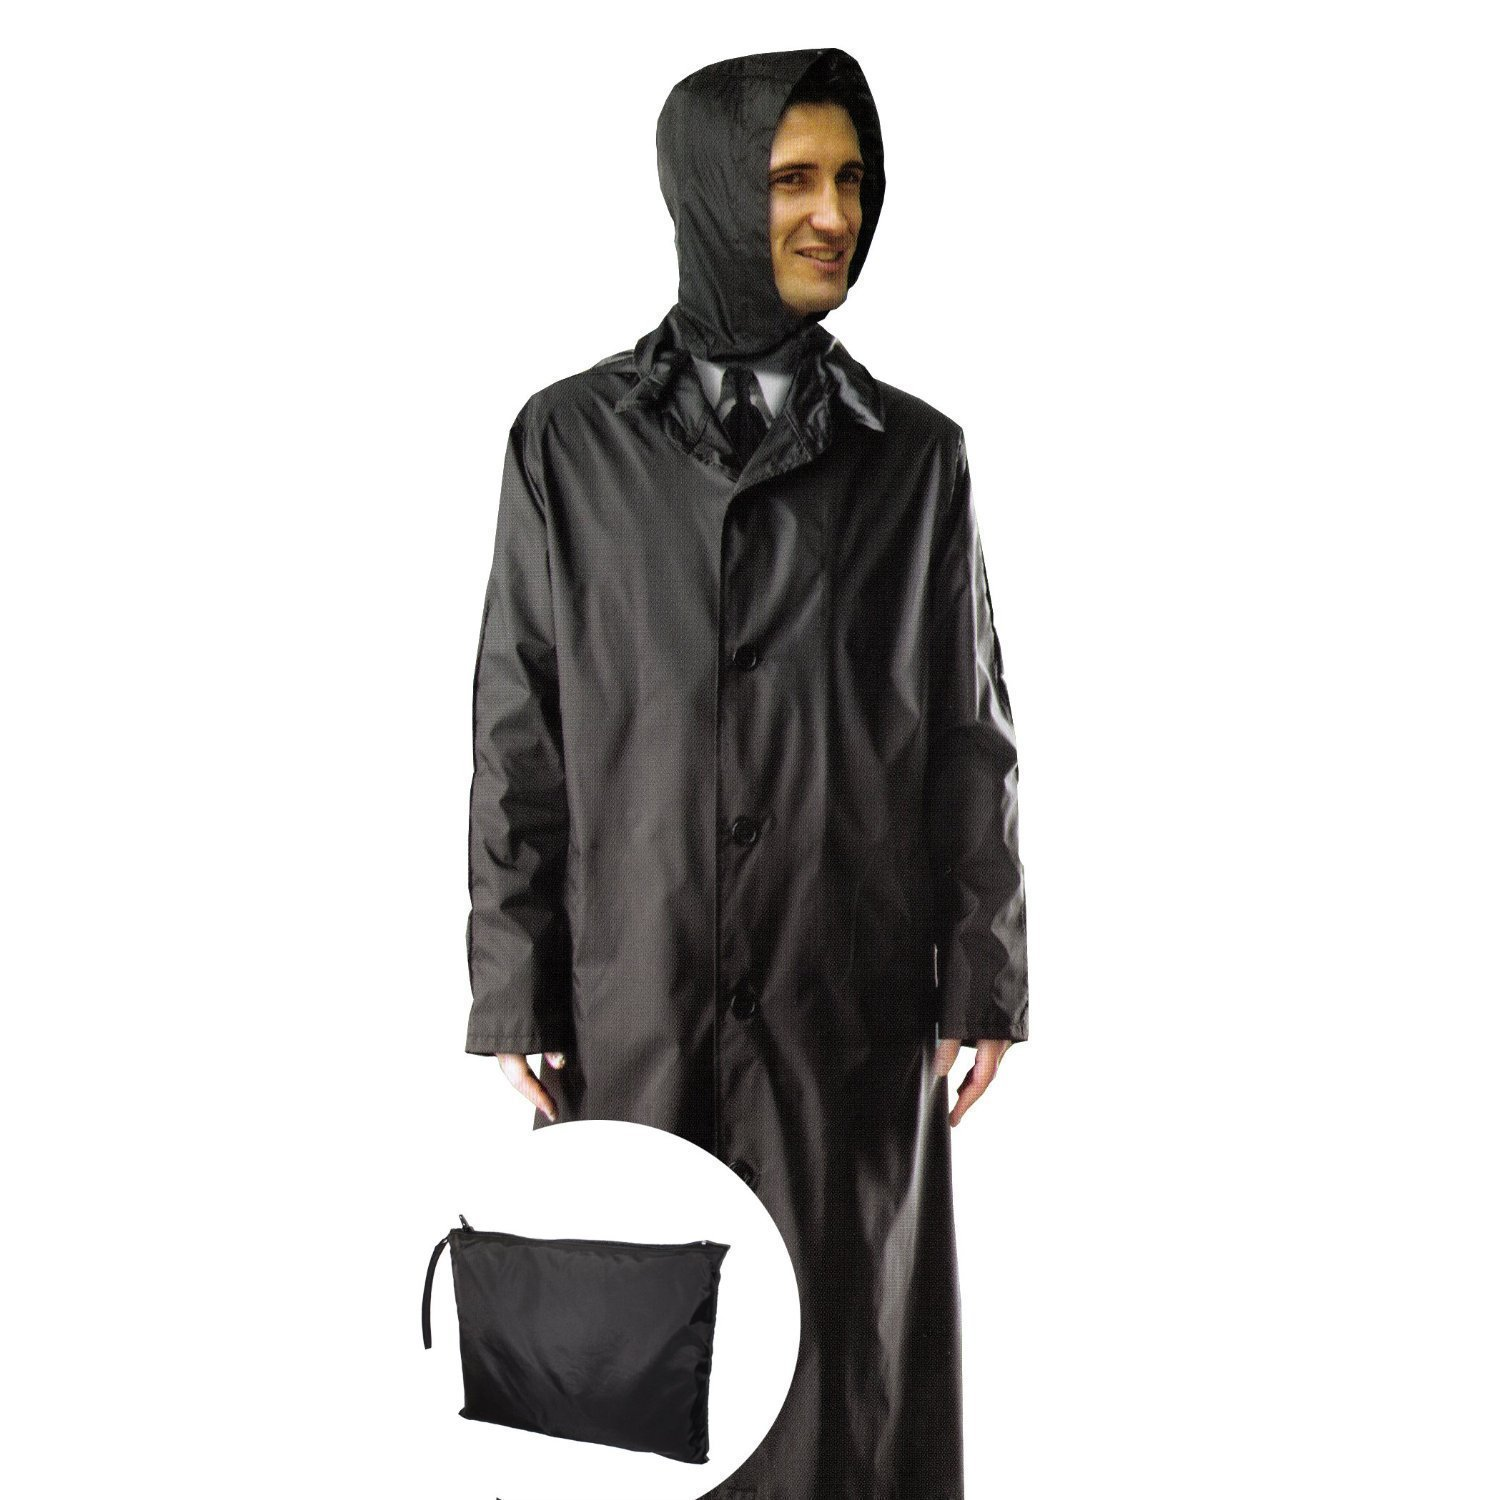 Gilbins Mens 100% Nylon Raincoat - Zip in Hood - With Travel Pouch - 3X Large - Black